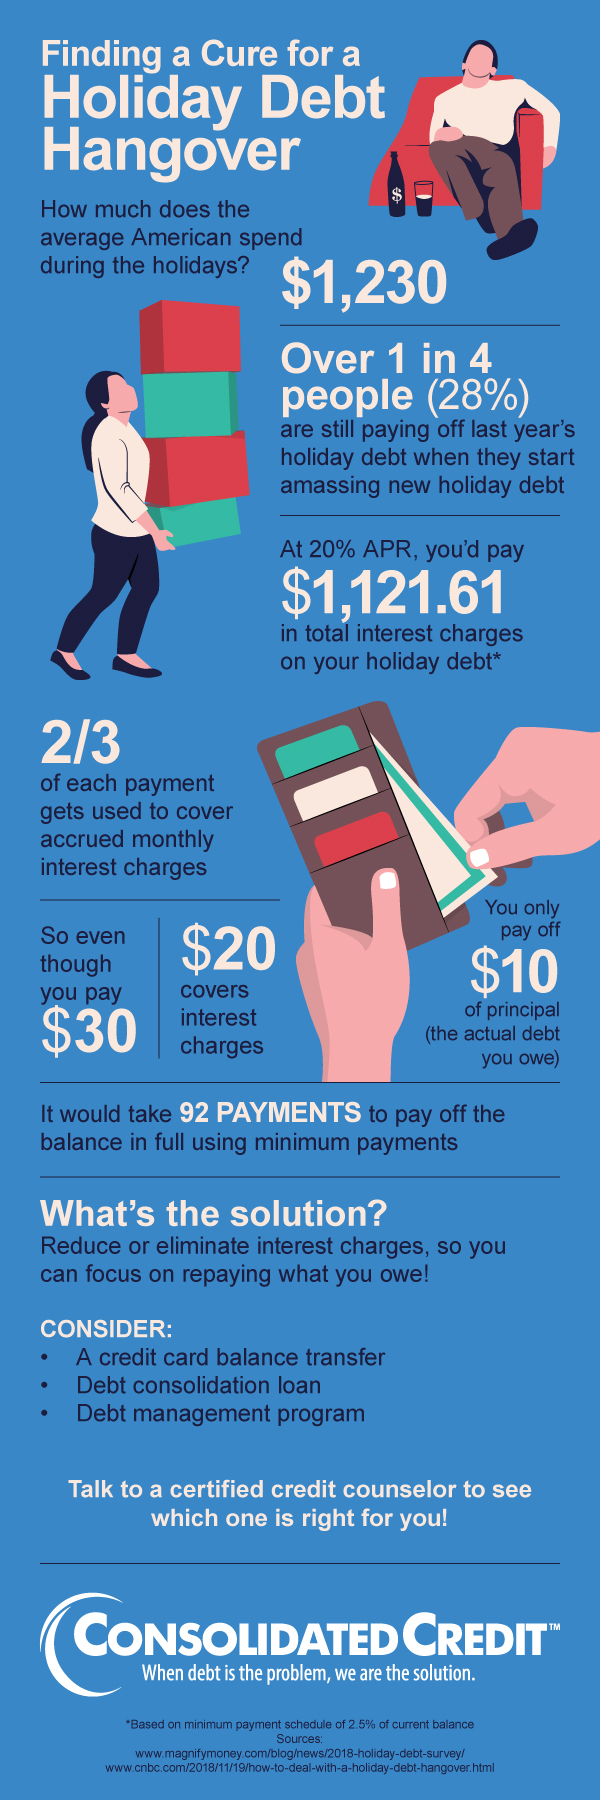 Holiday Debt Hangover Infographic - how much does holiday debt cost with minimum credit card payments?